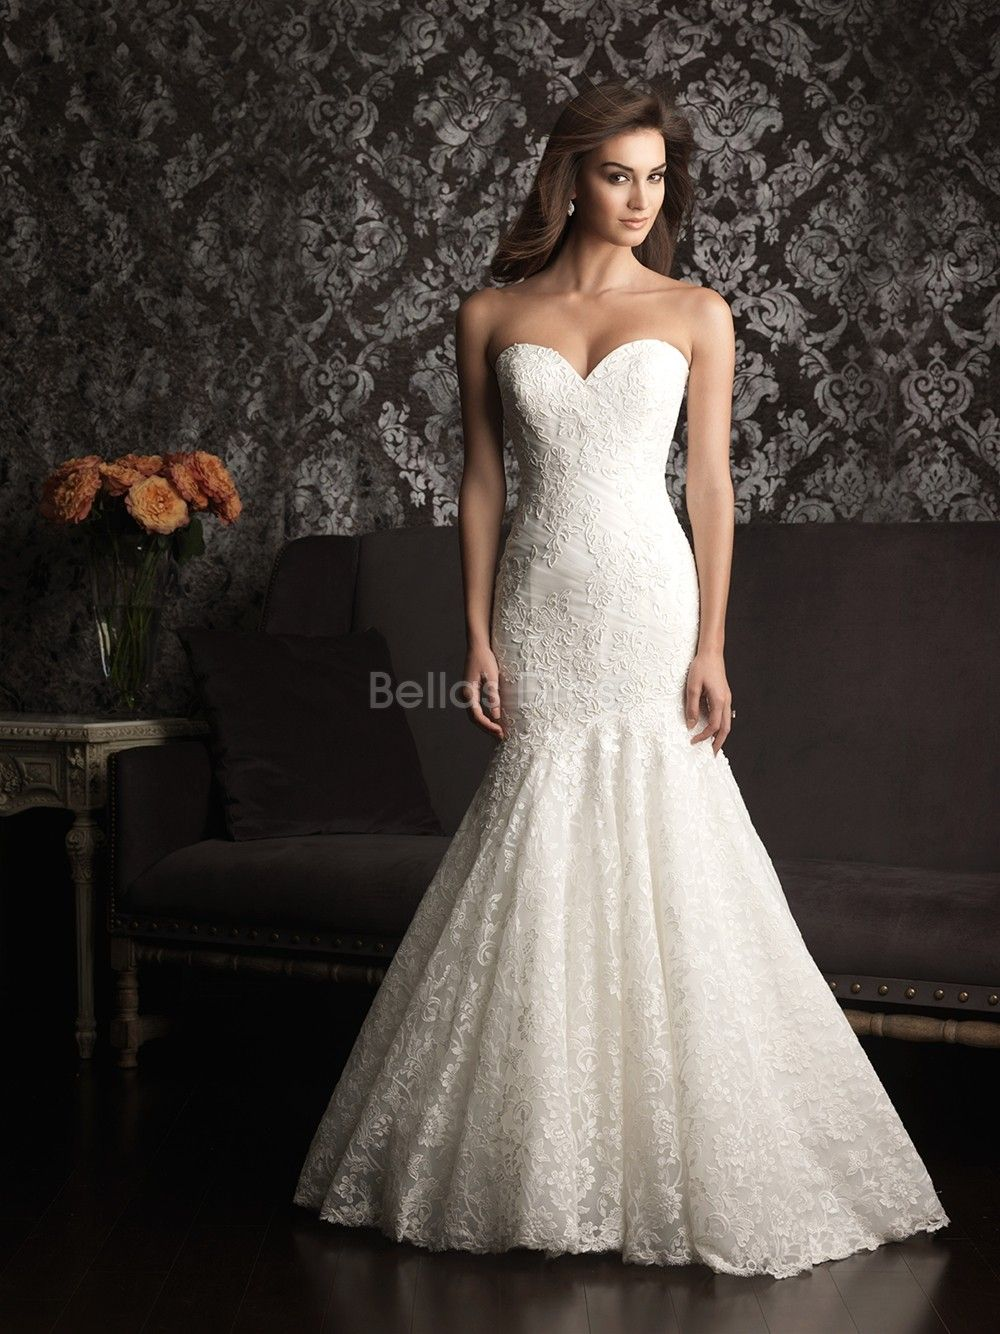 strapless mermaid wedding dresses Luxurious Mermaid Lace Court Train Sweetheart Wedding Dresses With Buttons